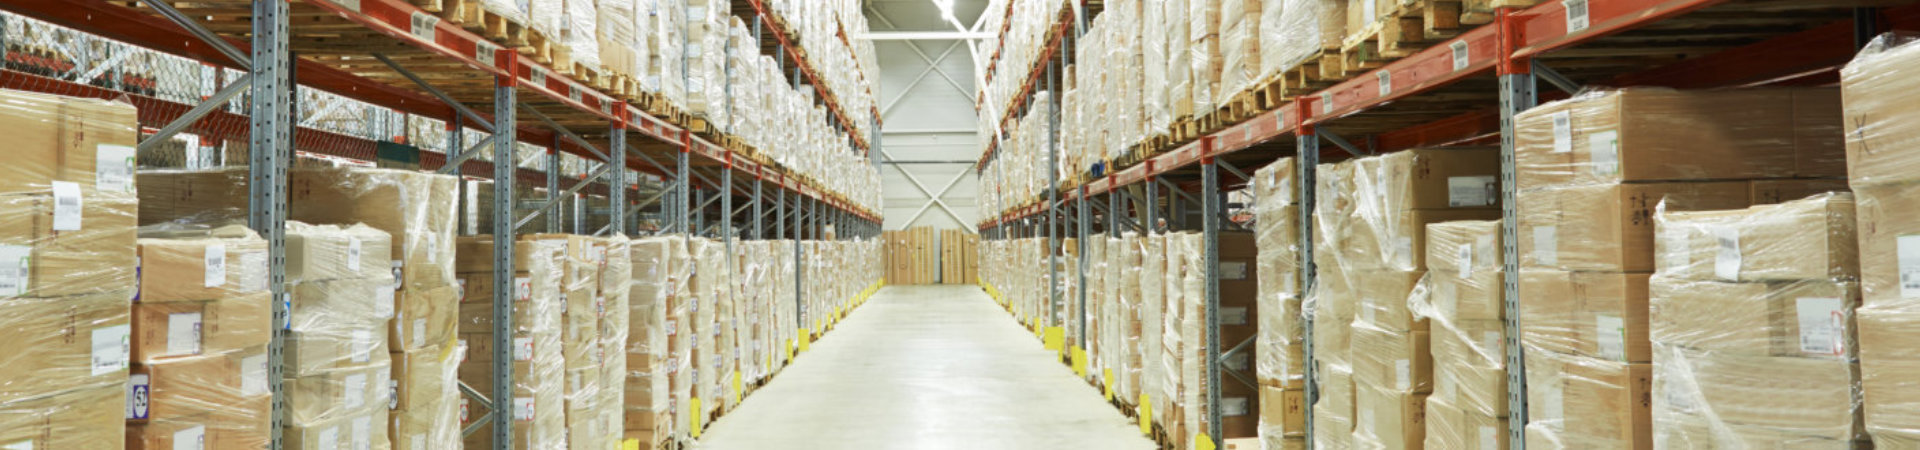 parcels in a warehouse